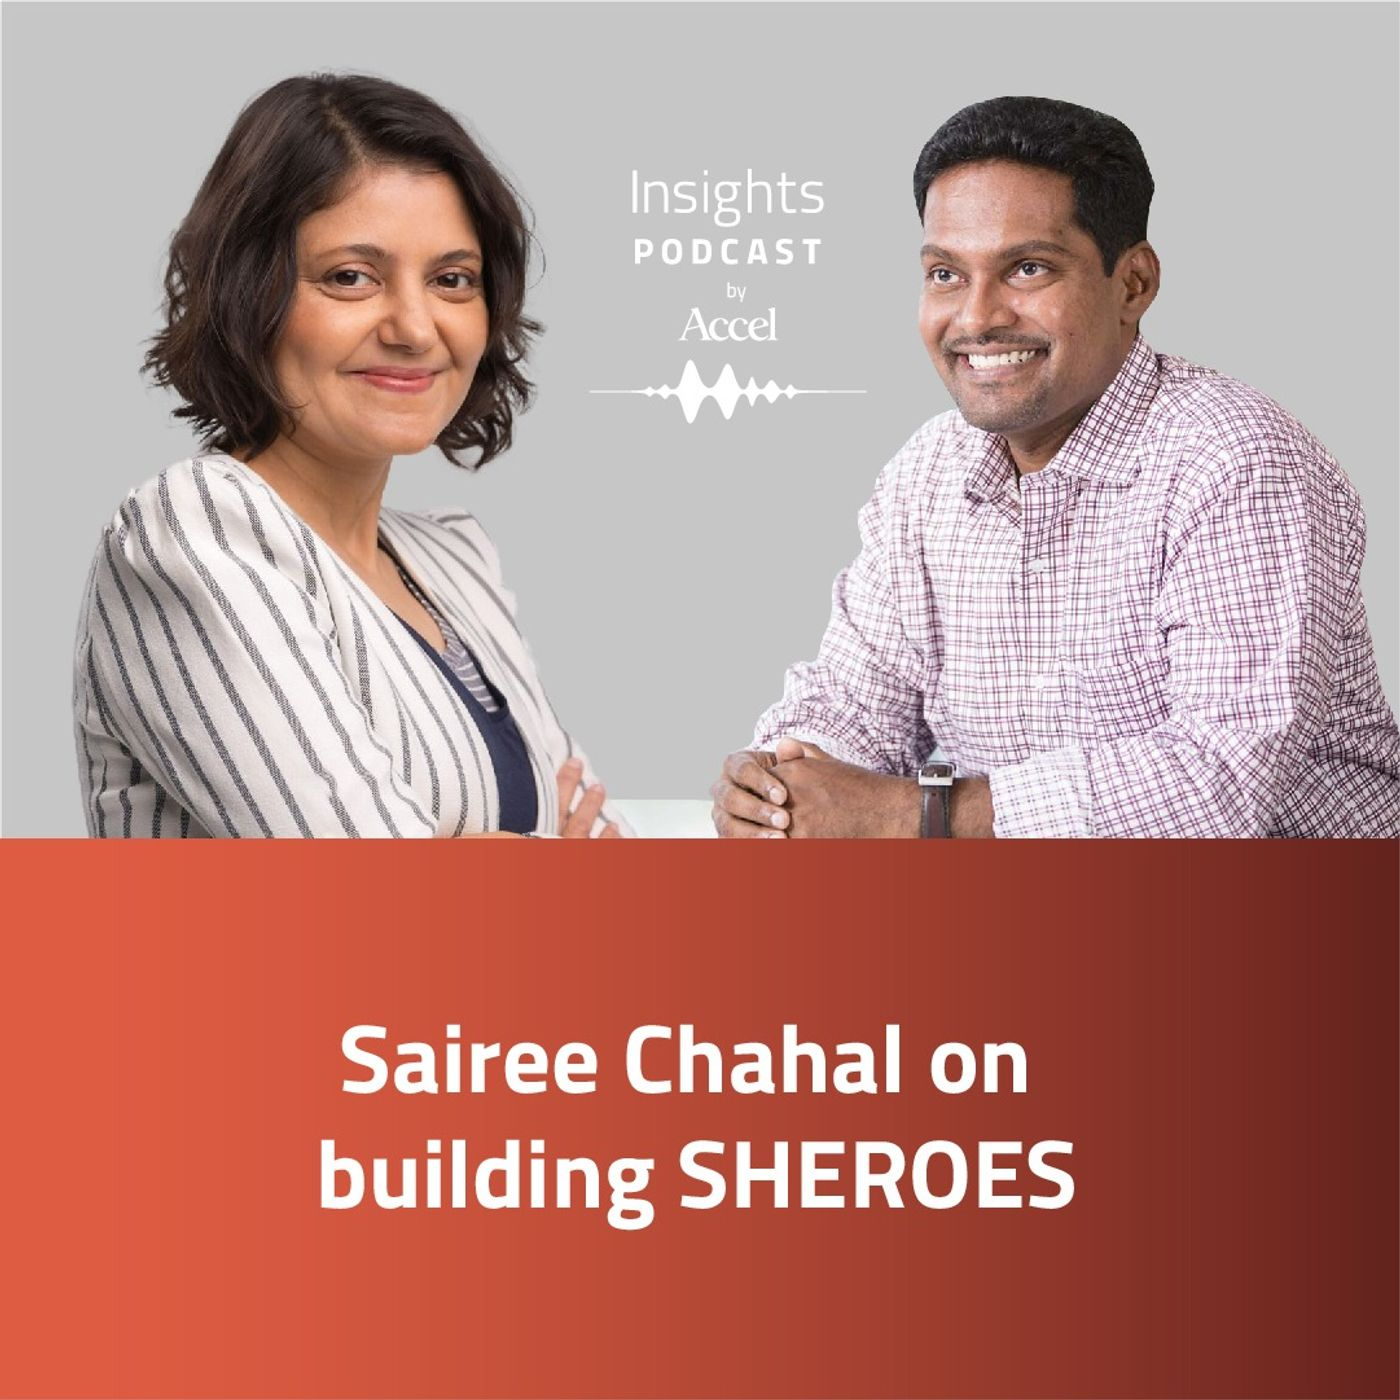 On Building SHEROES